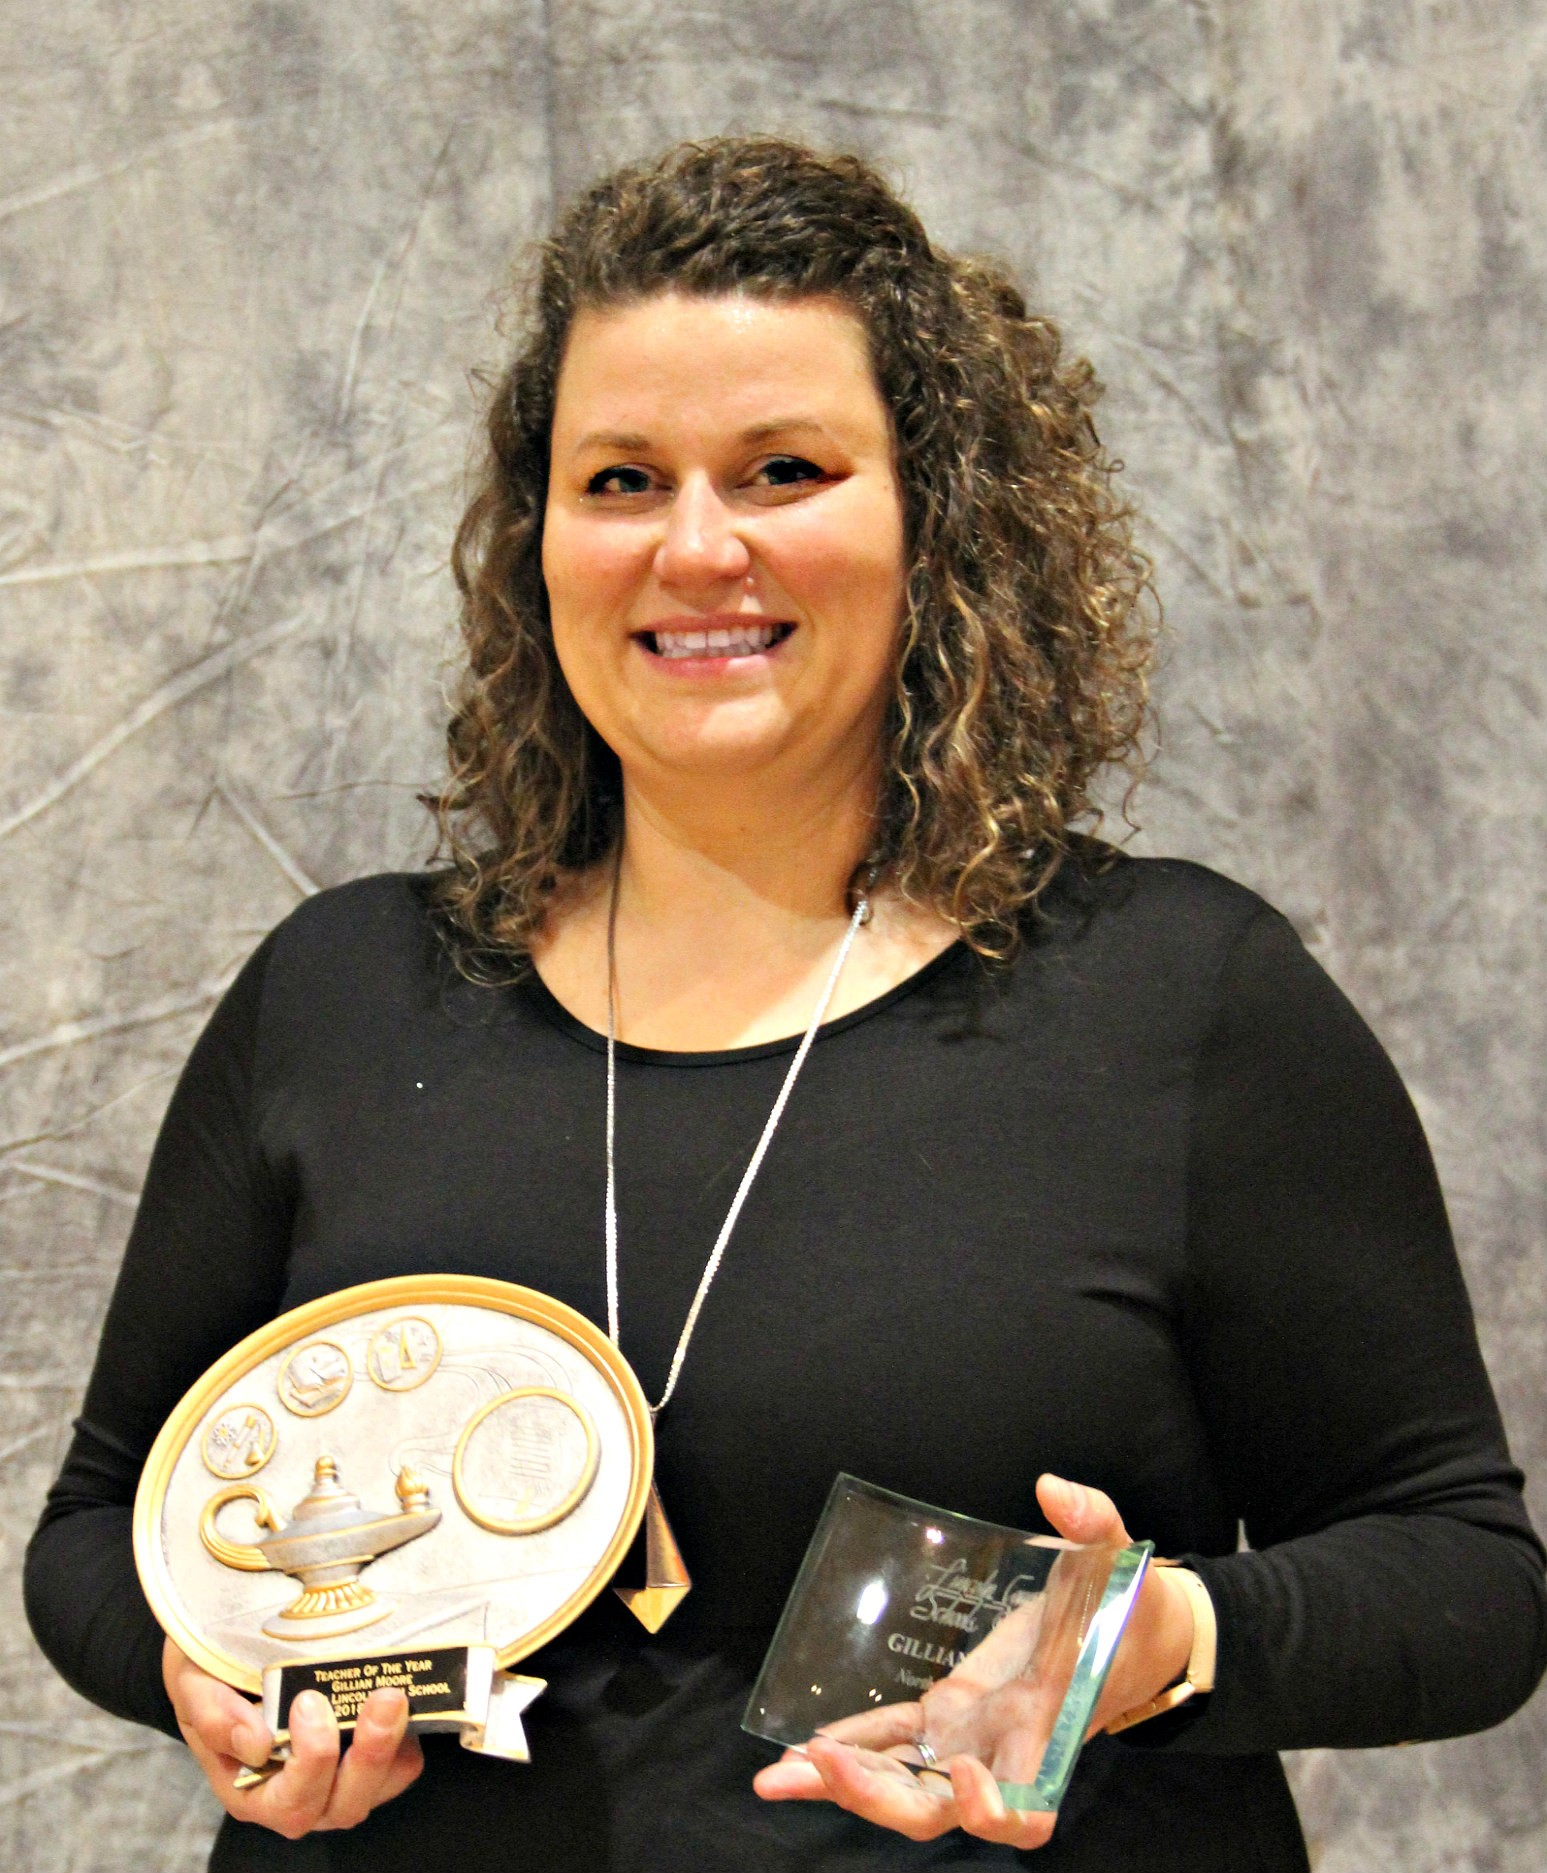 Niagara University Graduate Earns Teacher of the Year Award in North Carolina District